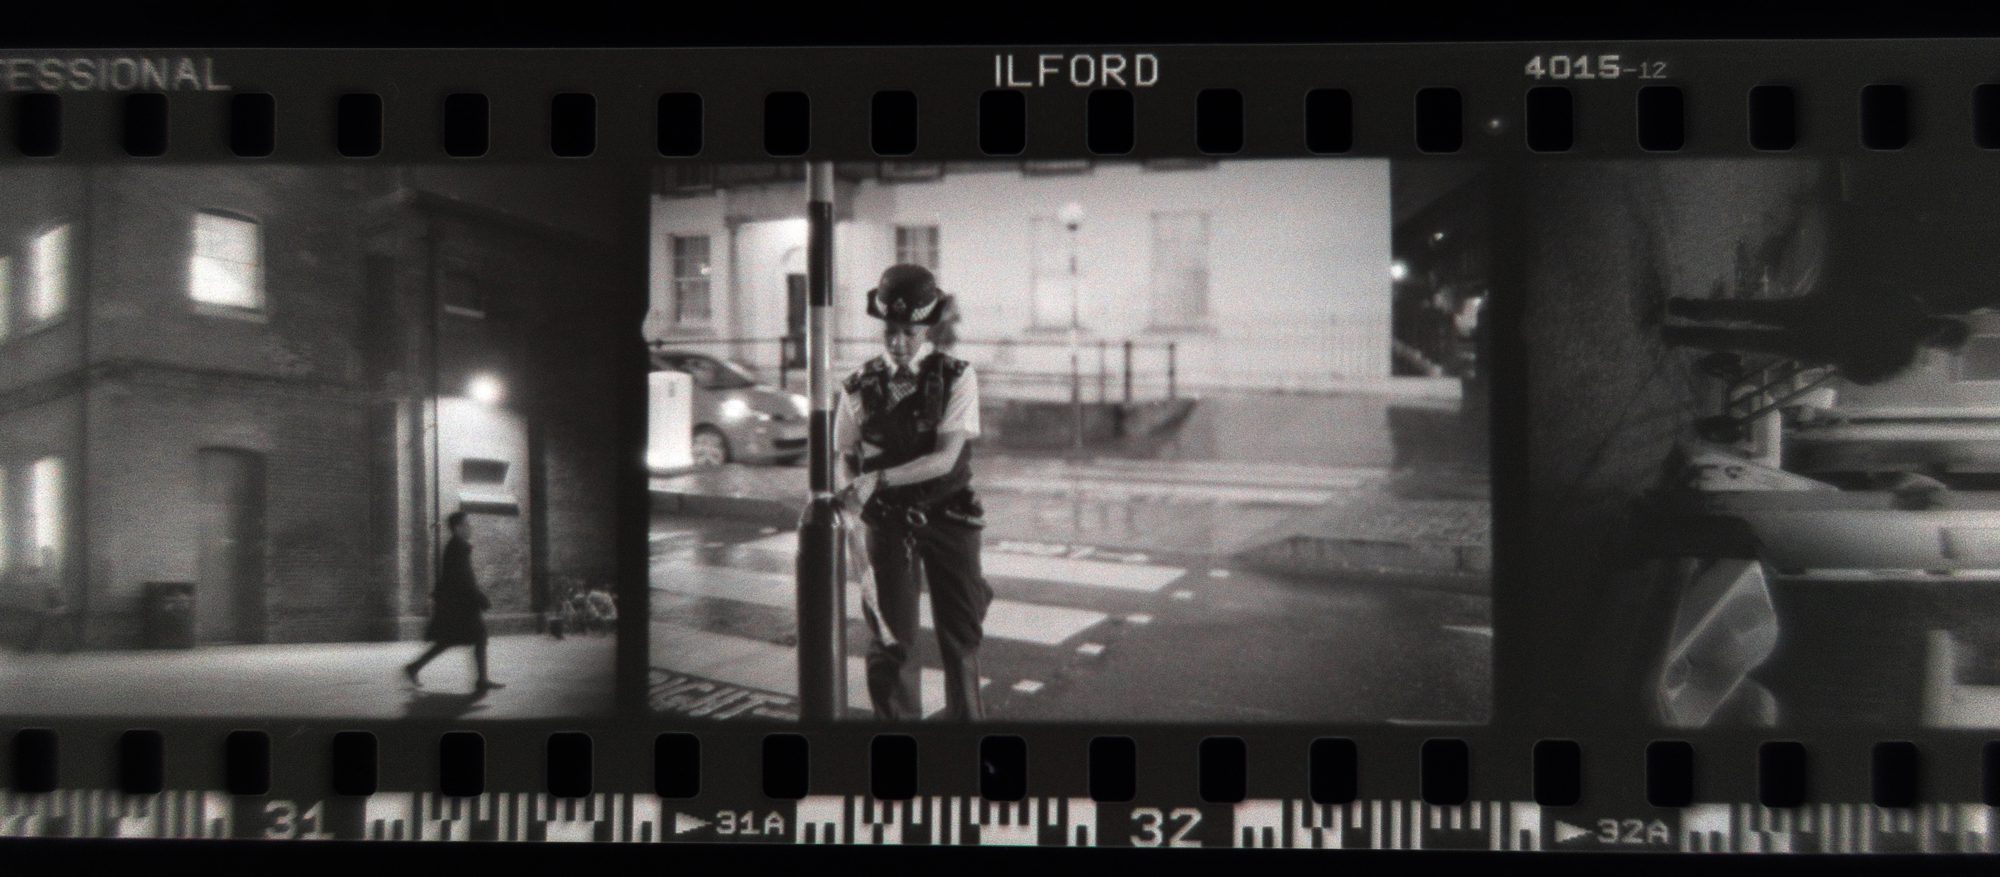 Black and white negative shot on ILFORD Delta 3200 film by Simon King